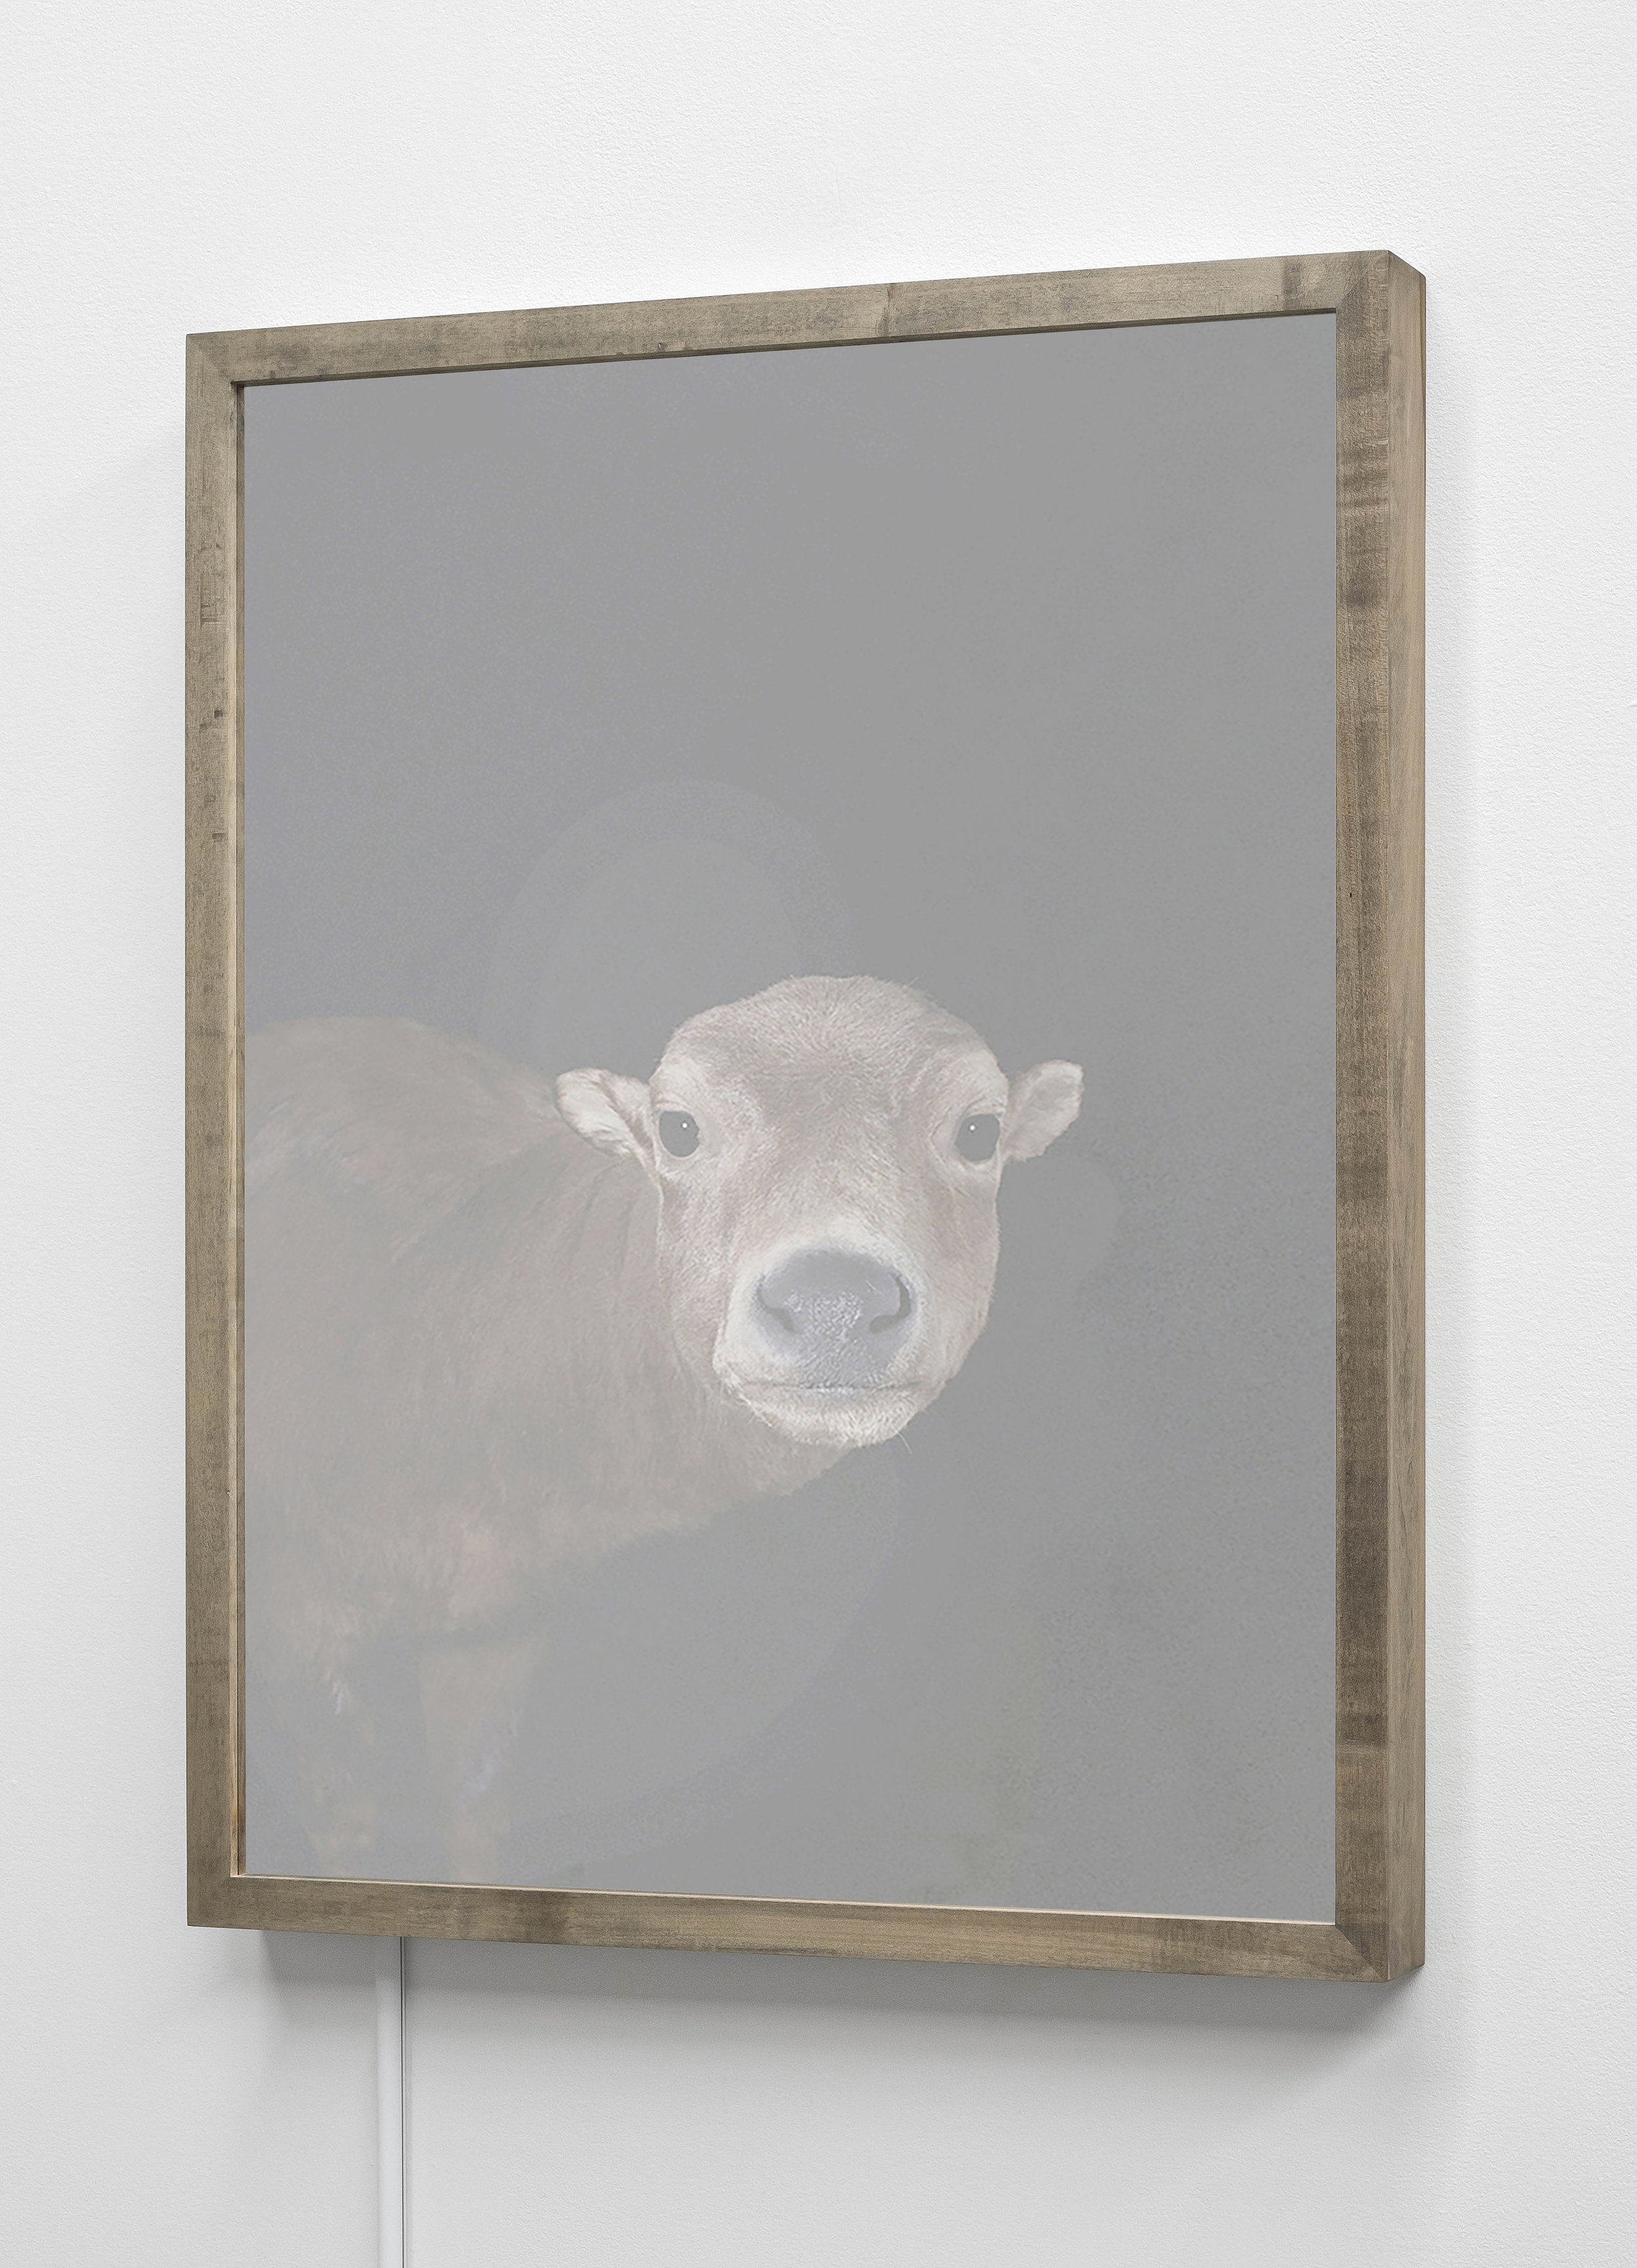 CHRISTINA SEELY  Mountain Anoa,  Bubalus quarlesi - Endangered Kinetic Mirrored Lightbox  Available sizes: 30 x 24 in | Edition of 3 + 1AP 20 x 16 in | Edition of 3 + 1AP